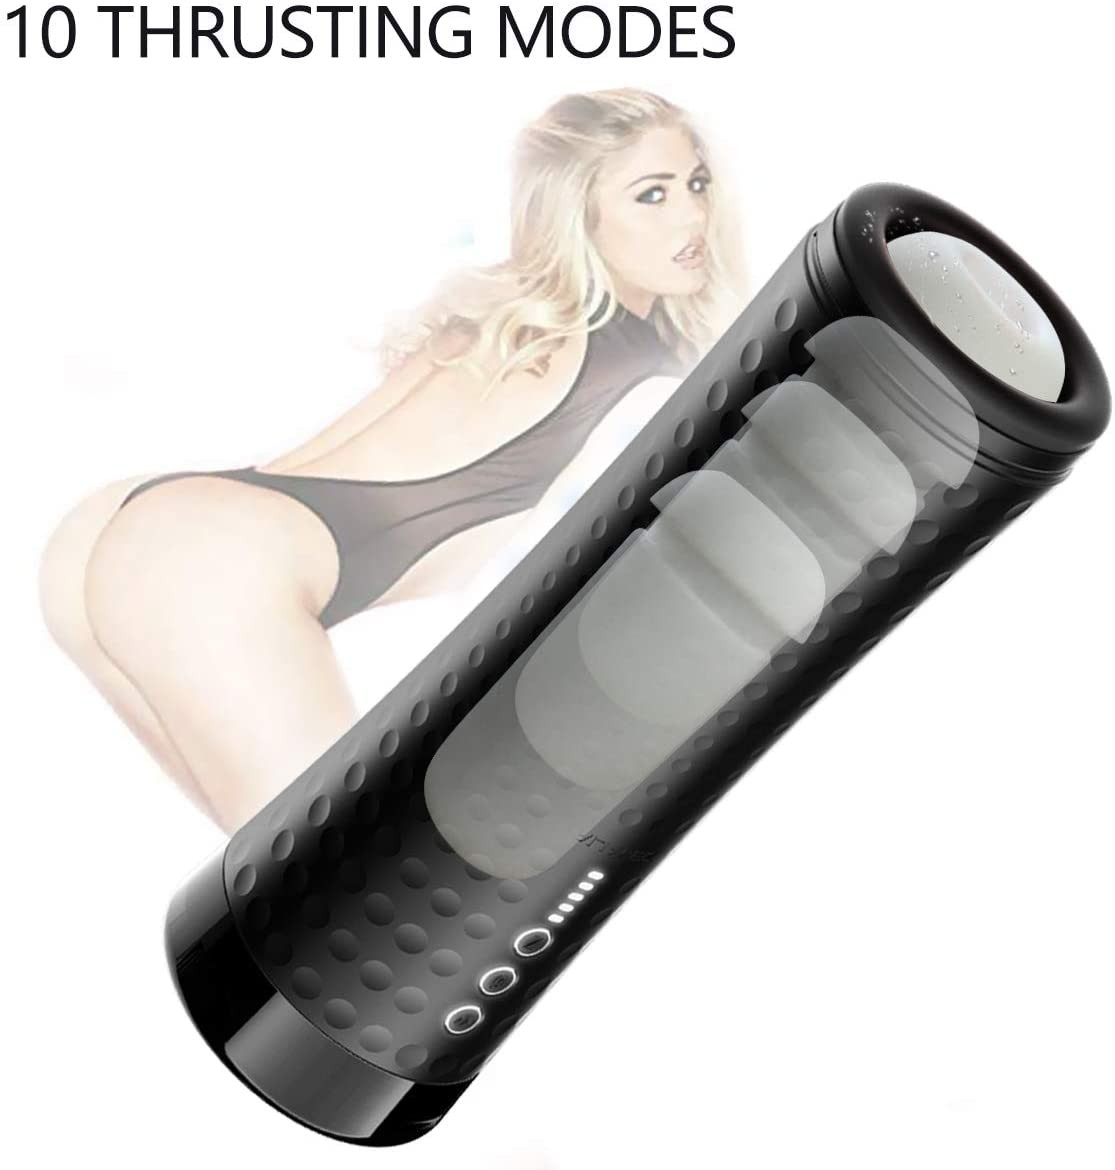 Automatic Male Masturbator With 10 Vibration Modes